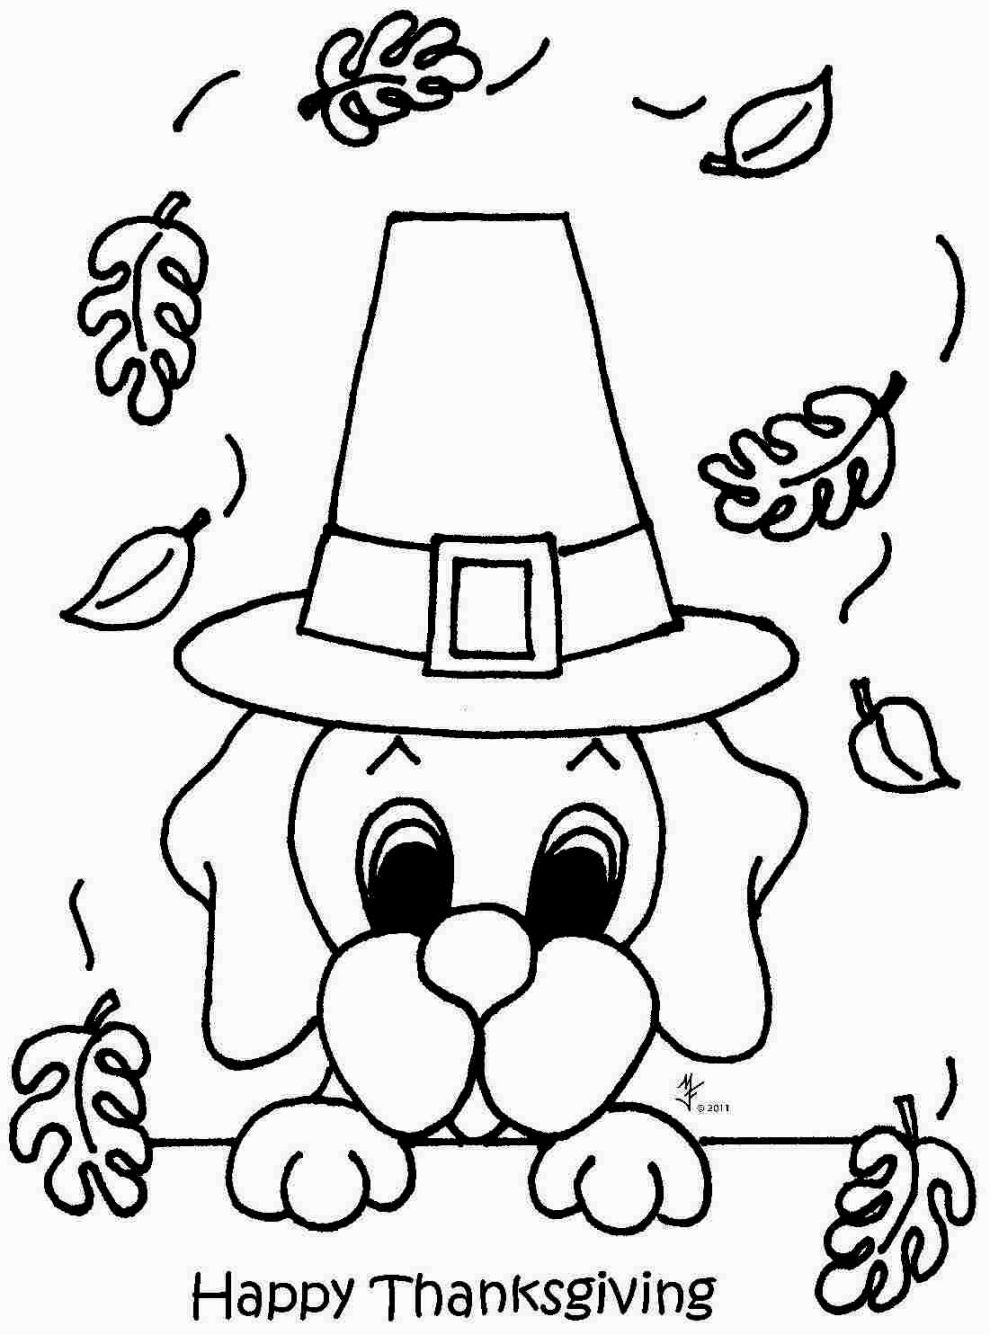 Coloring Pages Thanksgiving | Coloring Pages | Pinterest - Thanksgiving Printable Books Free